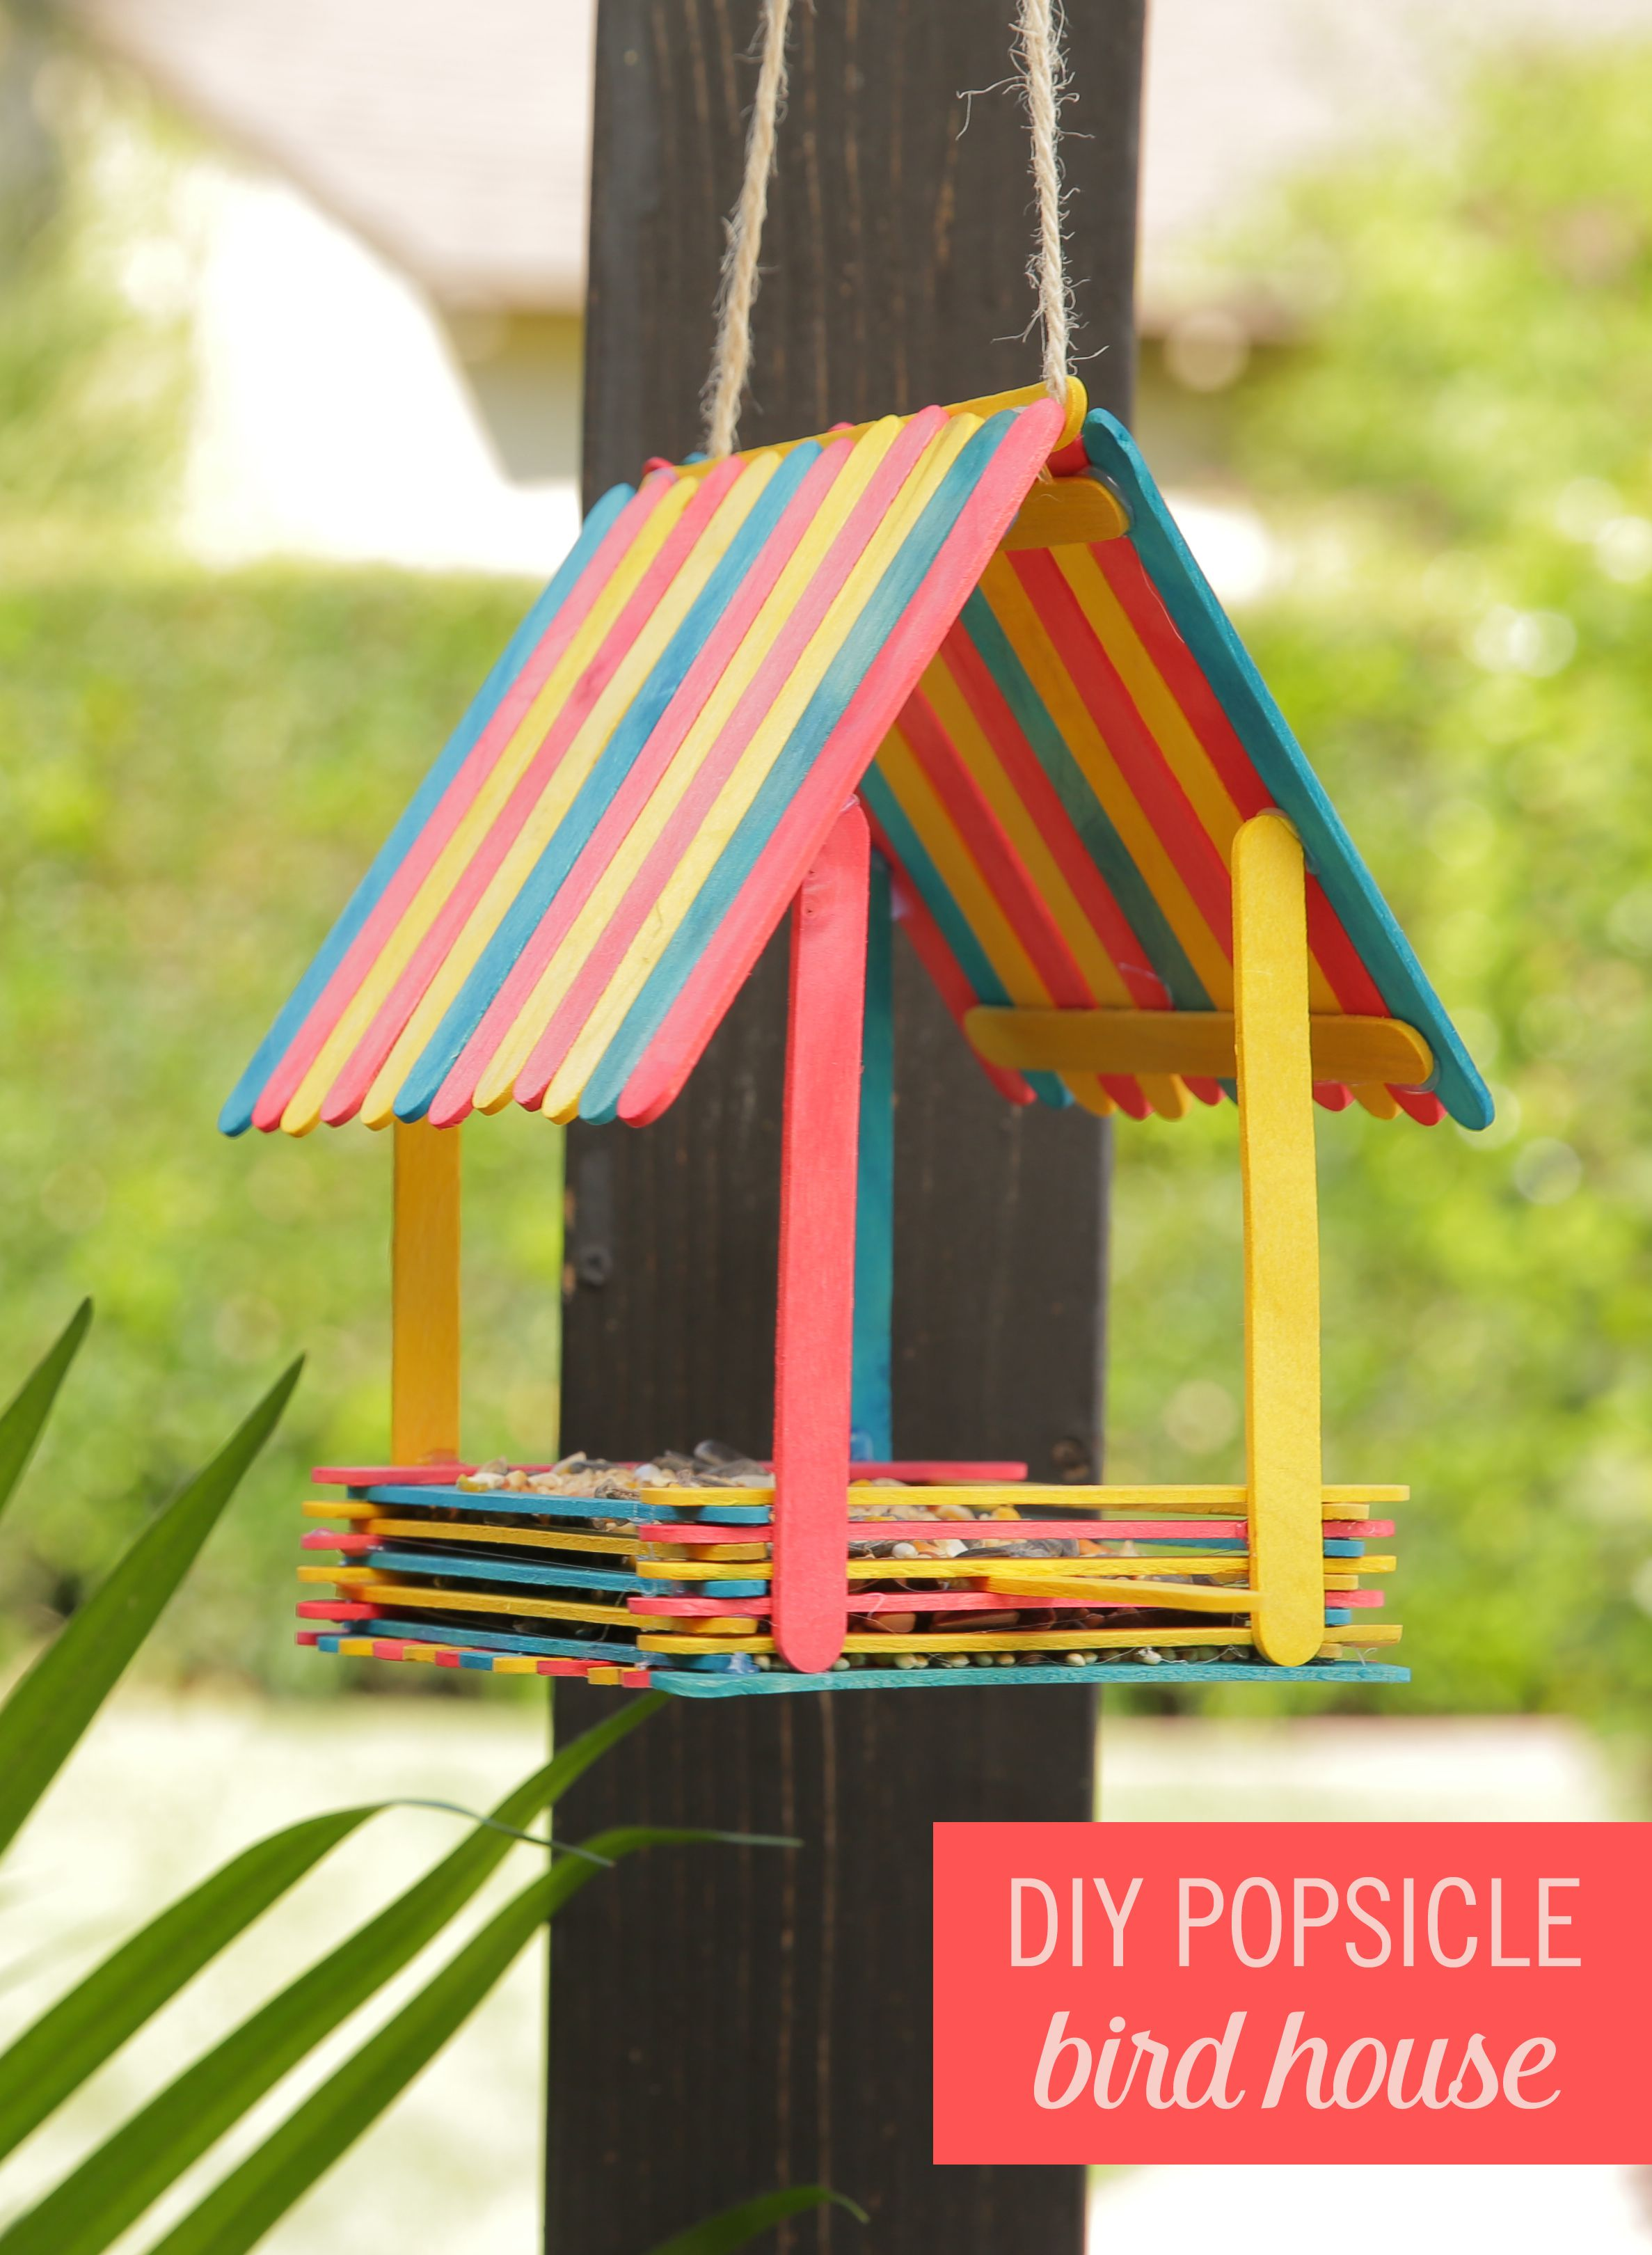 Turn Popsicles into an Adorable Bird House #craft